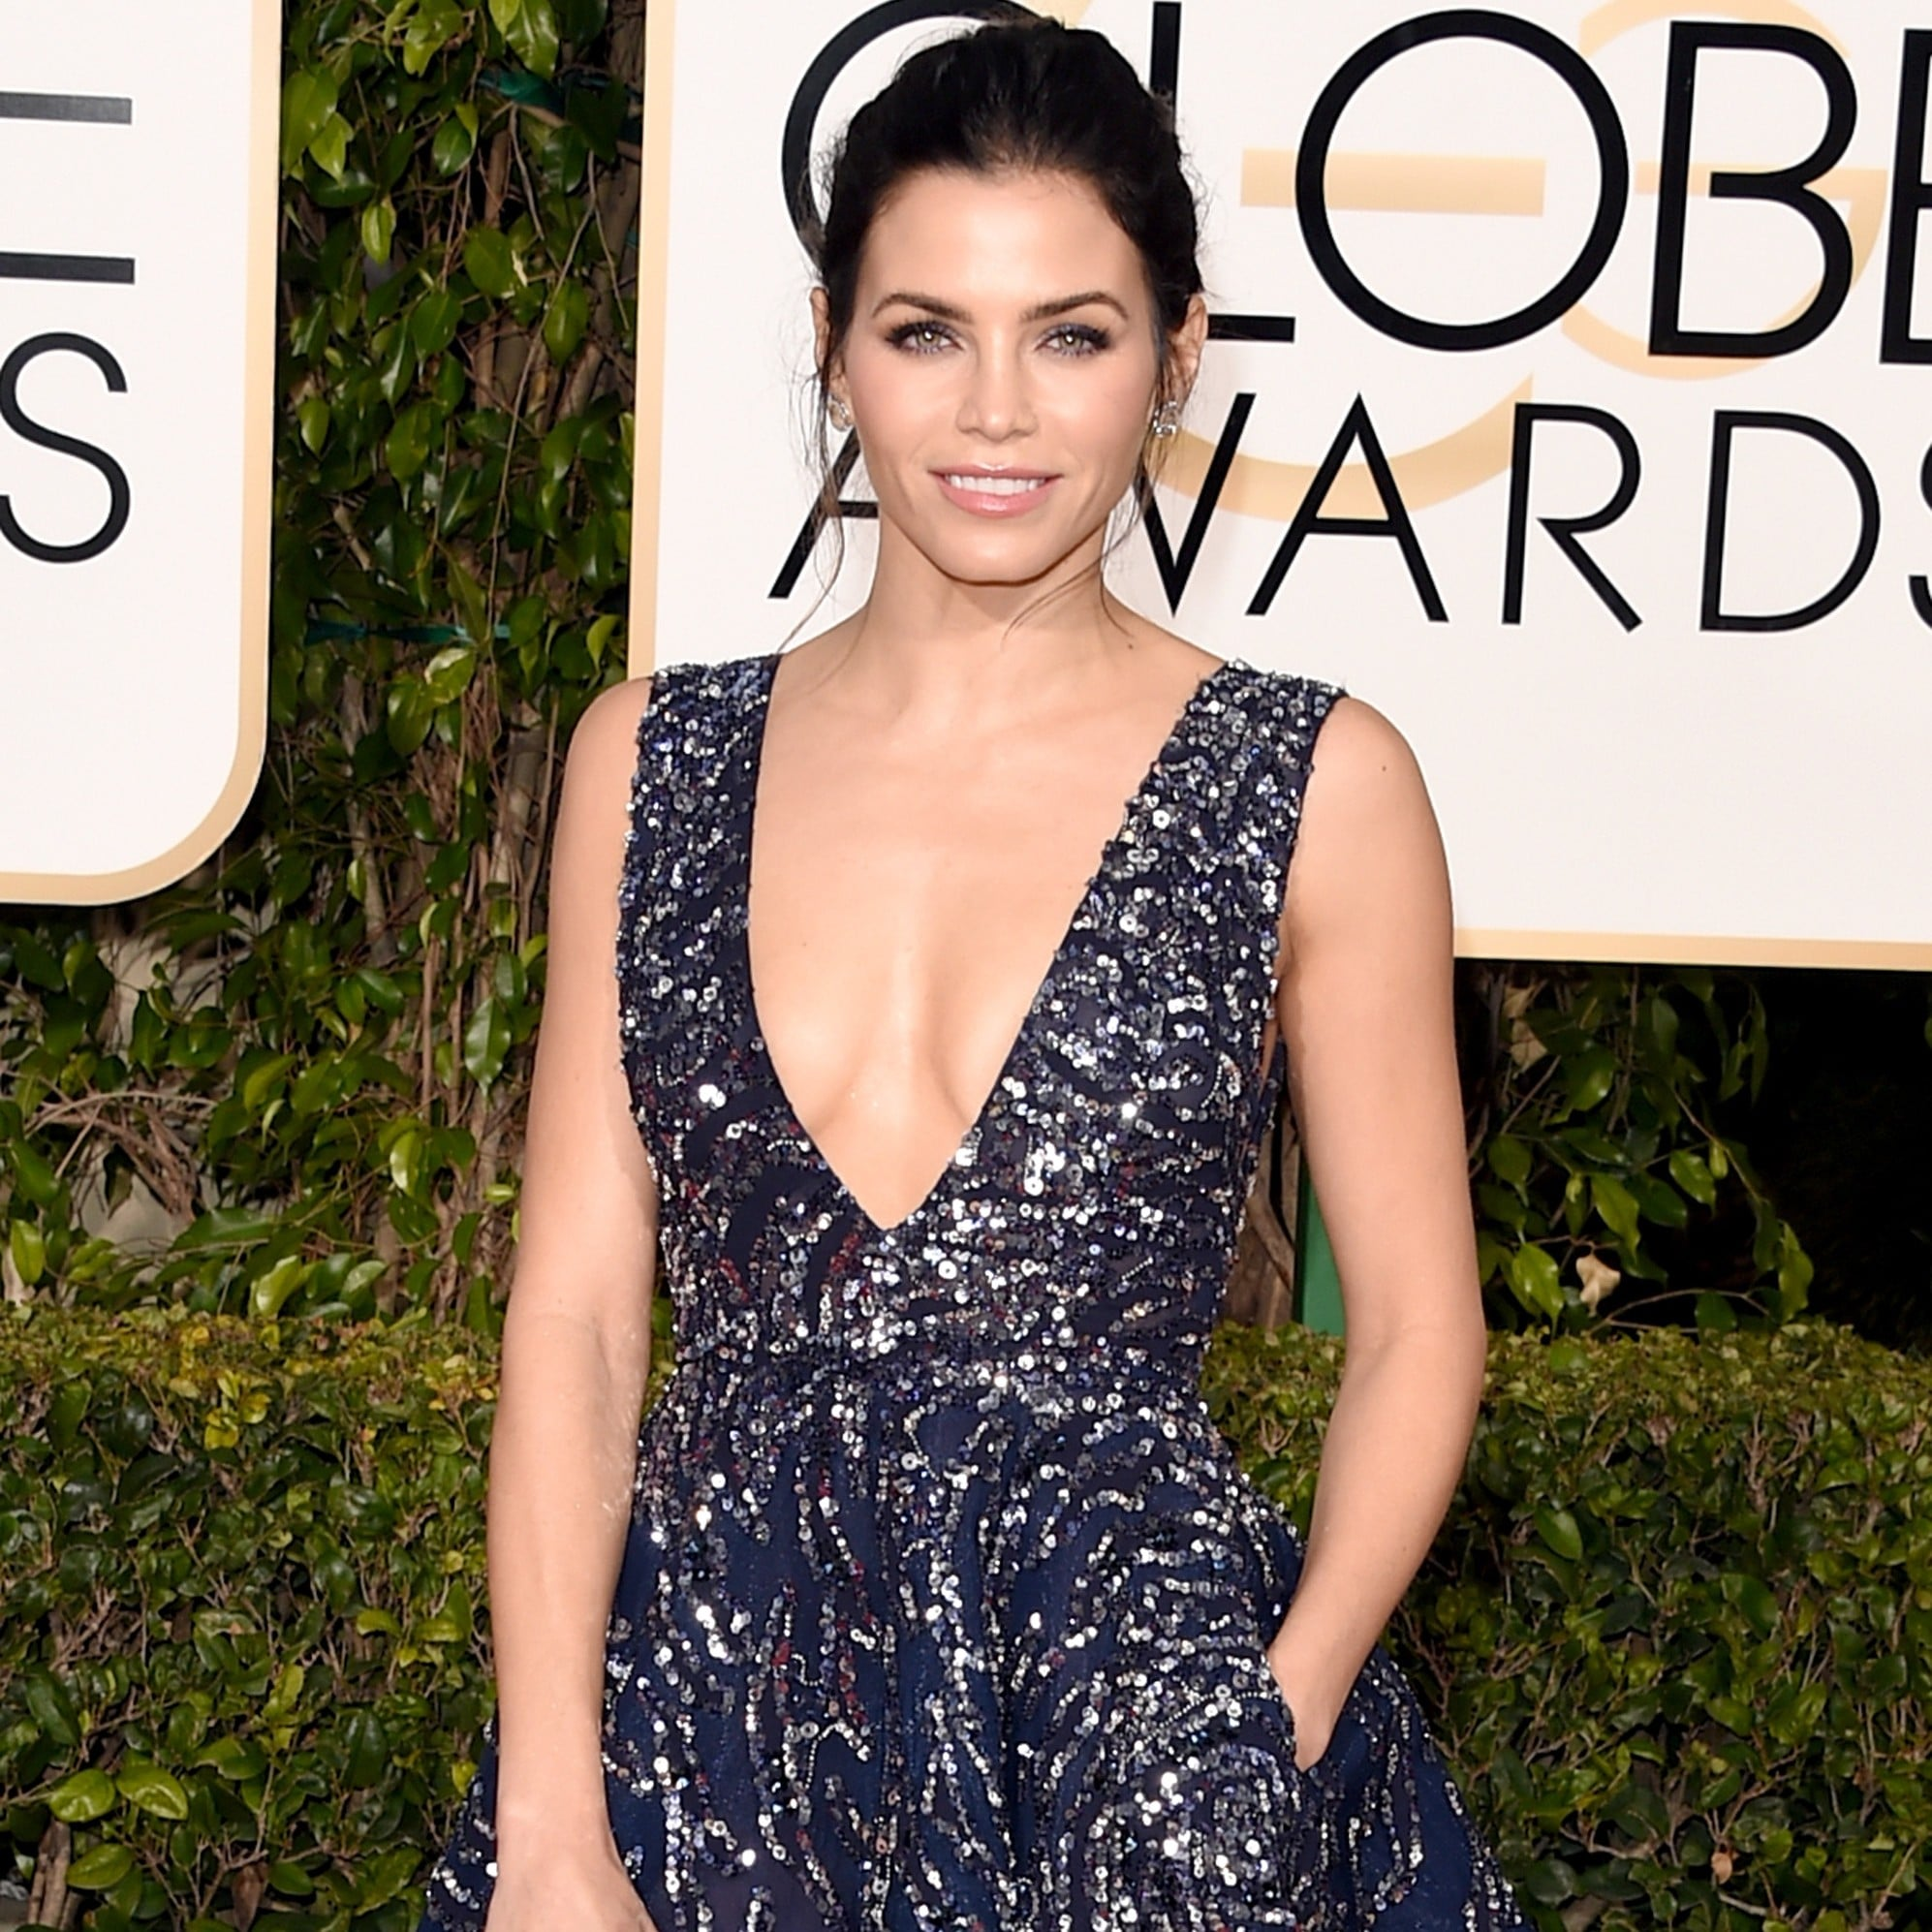 Jenna Dewan Tatum on Saving Dresses For Her Daughter | POPSUGAR ...